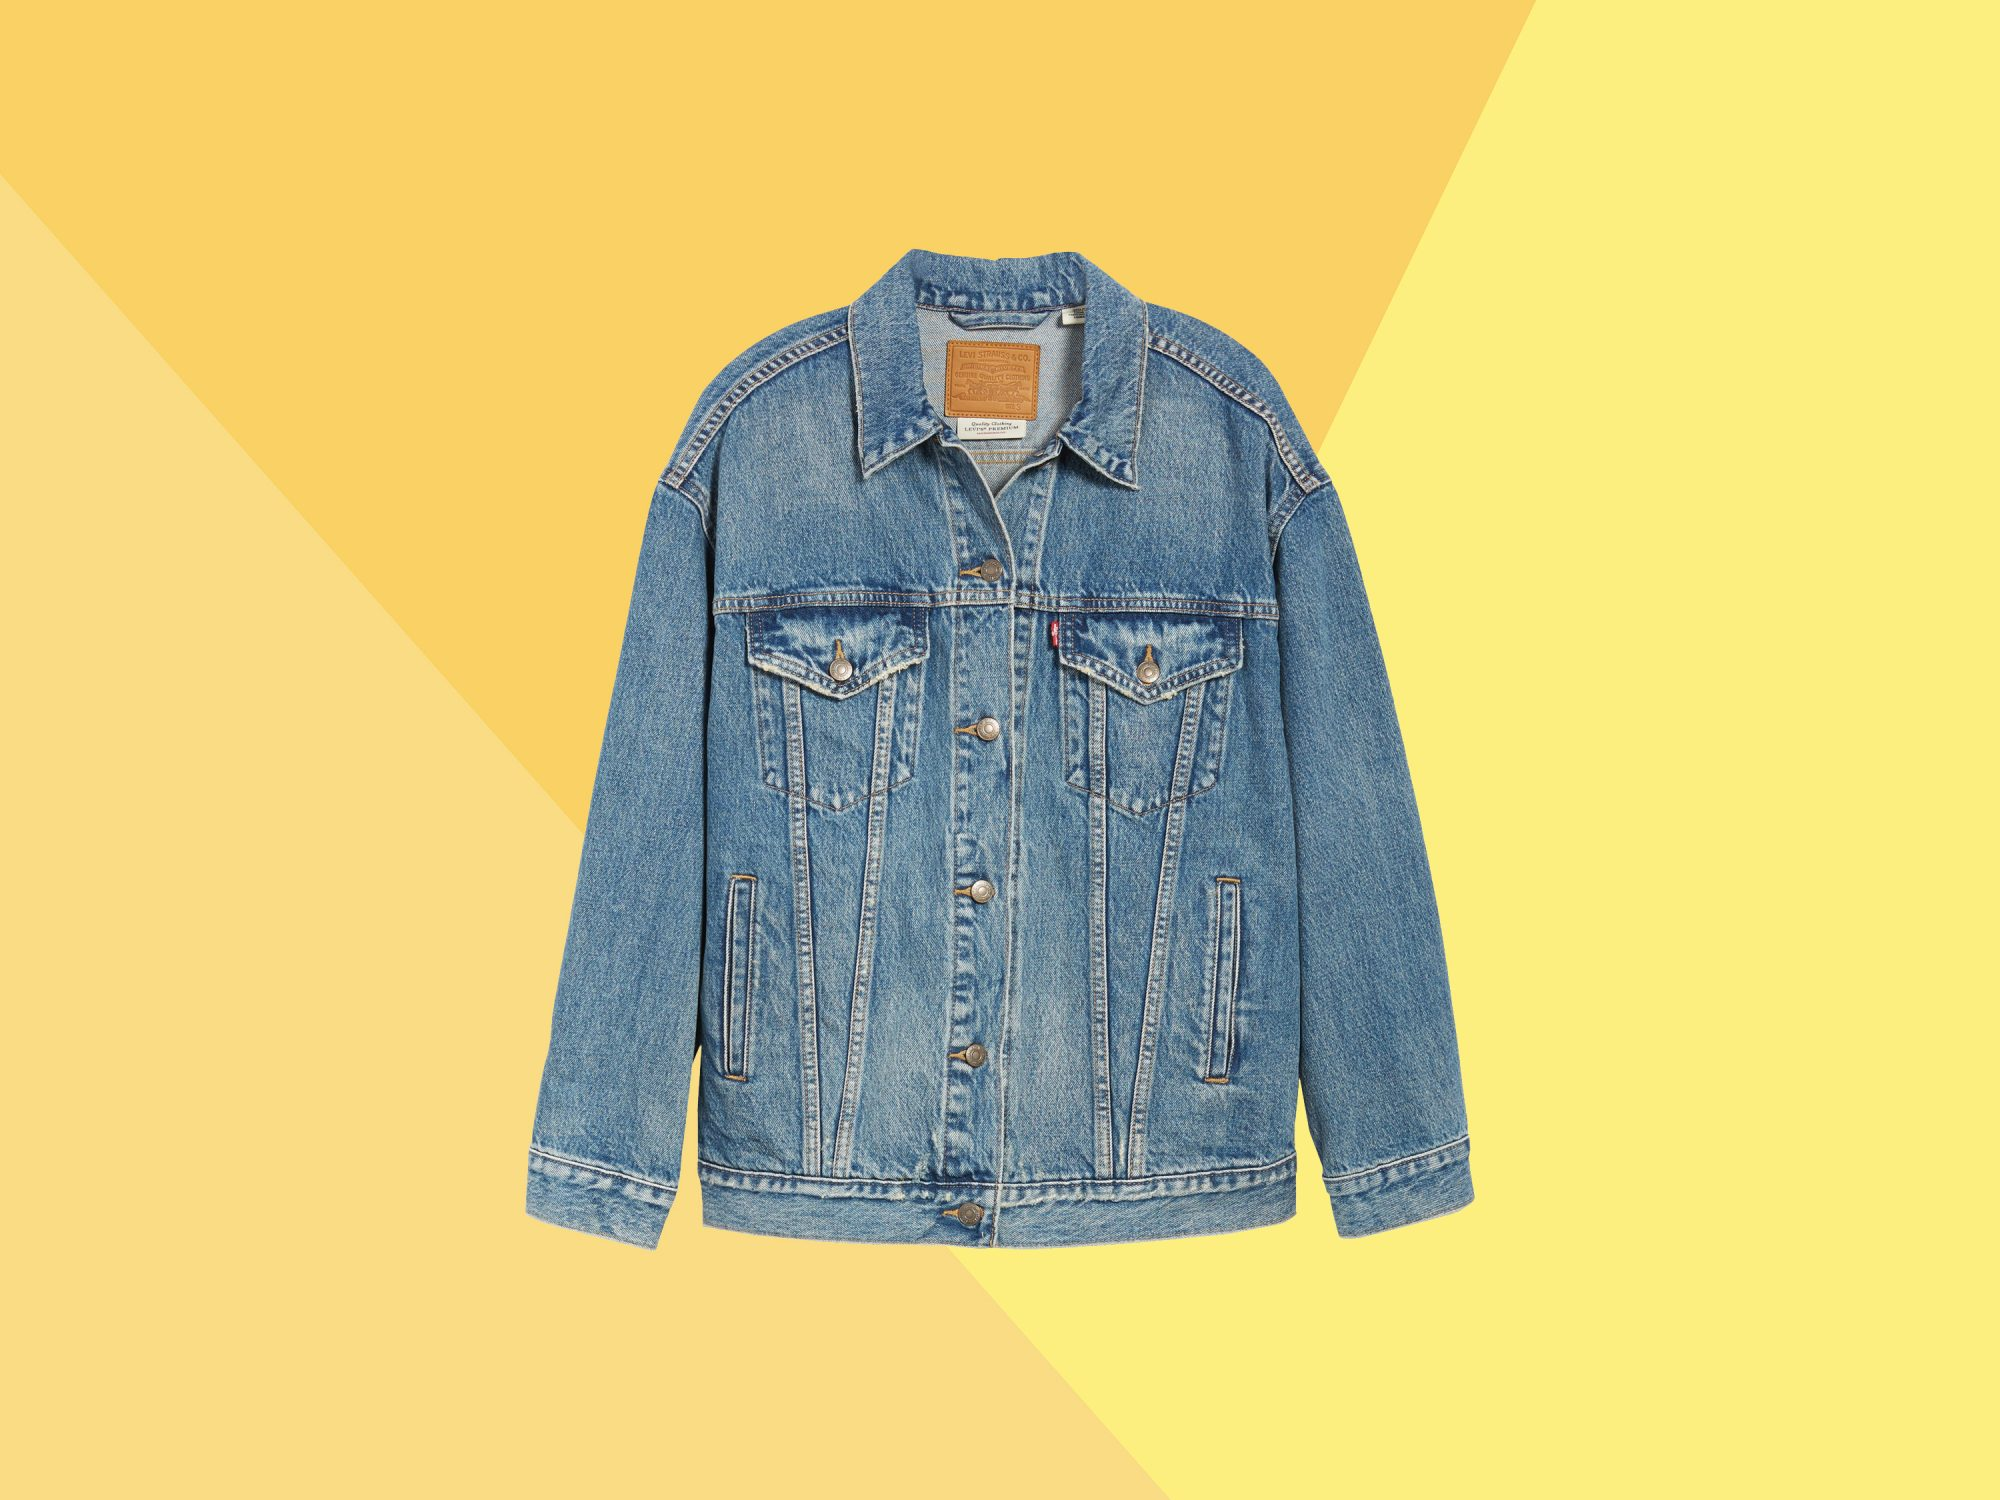 080d582f4485 How to Wear a Jean Jacket With Any Outfit | Real Simple